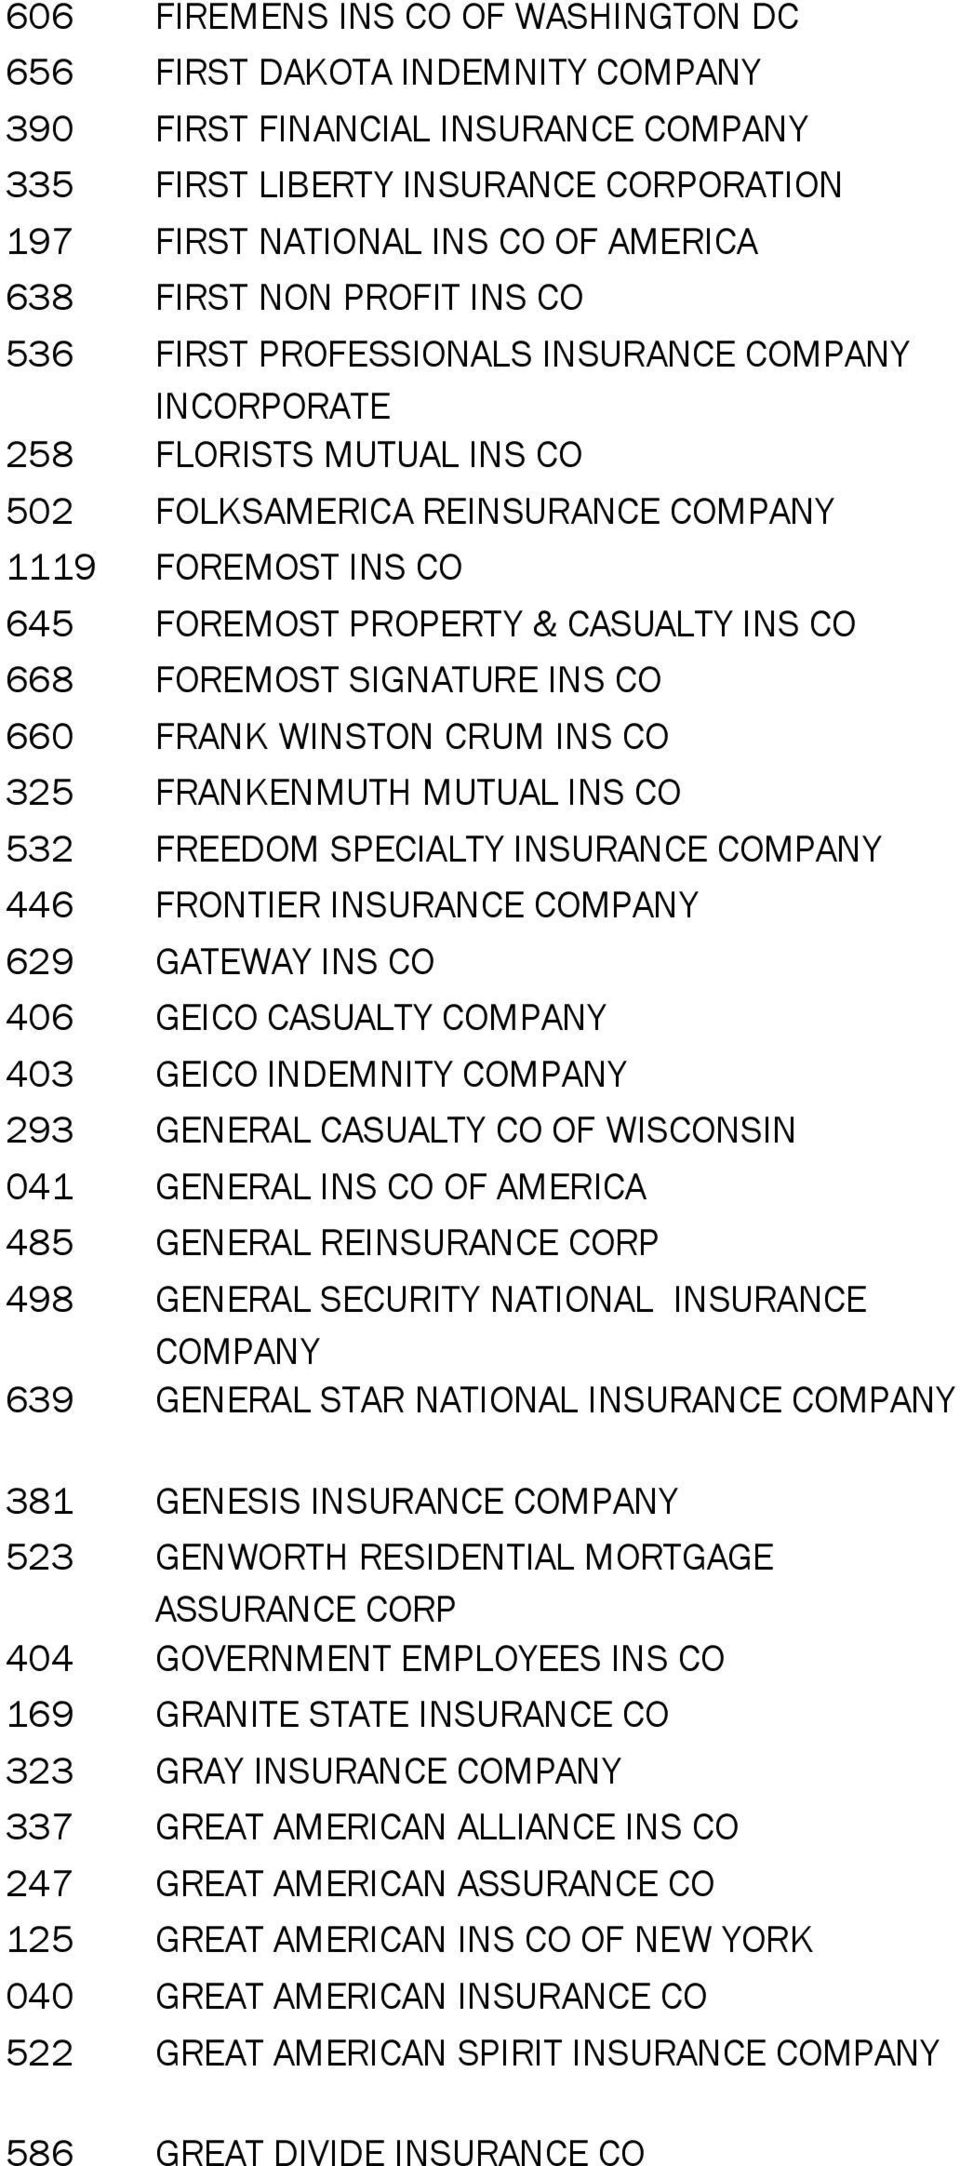 FRANK WINSTON CRUM INS CO 325 FRANKENMUTH MUTUAL INS CO 532 FREEDOM SPECIALTY INSURANCE 446 FRONTIER INSURANCE 629 GATEWAY INS CO 406 GEICO CASUALTY 403 GEICO INDEMNITY 293 GENERAL CASUALTY CO OF